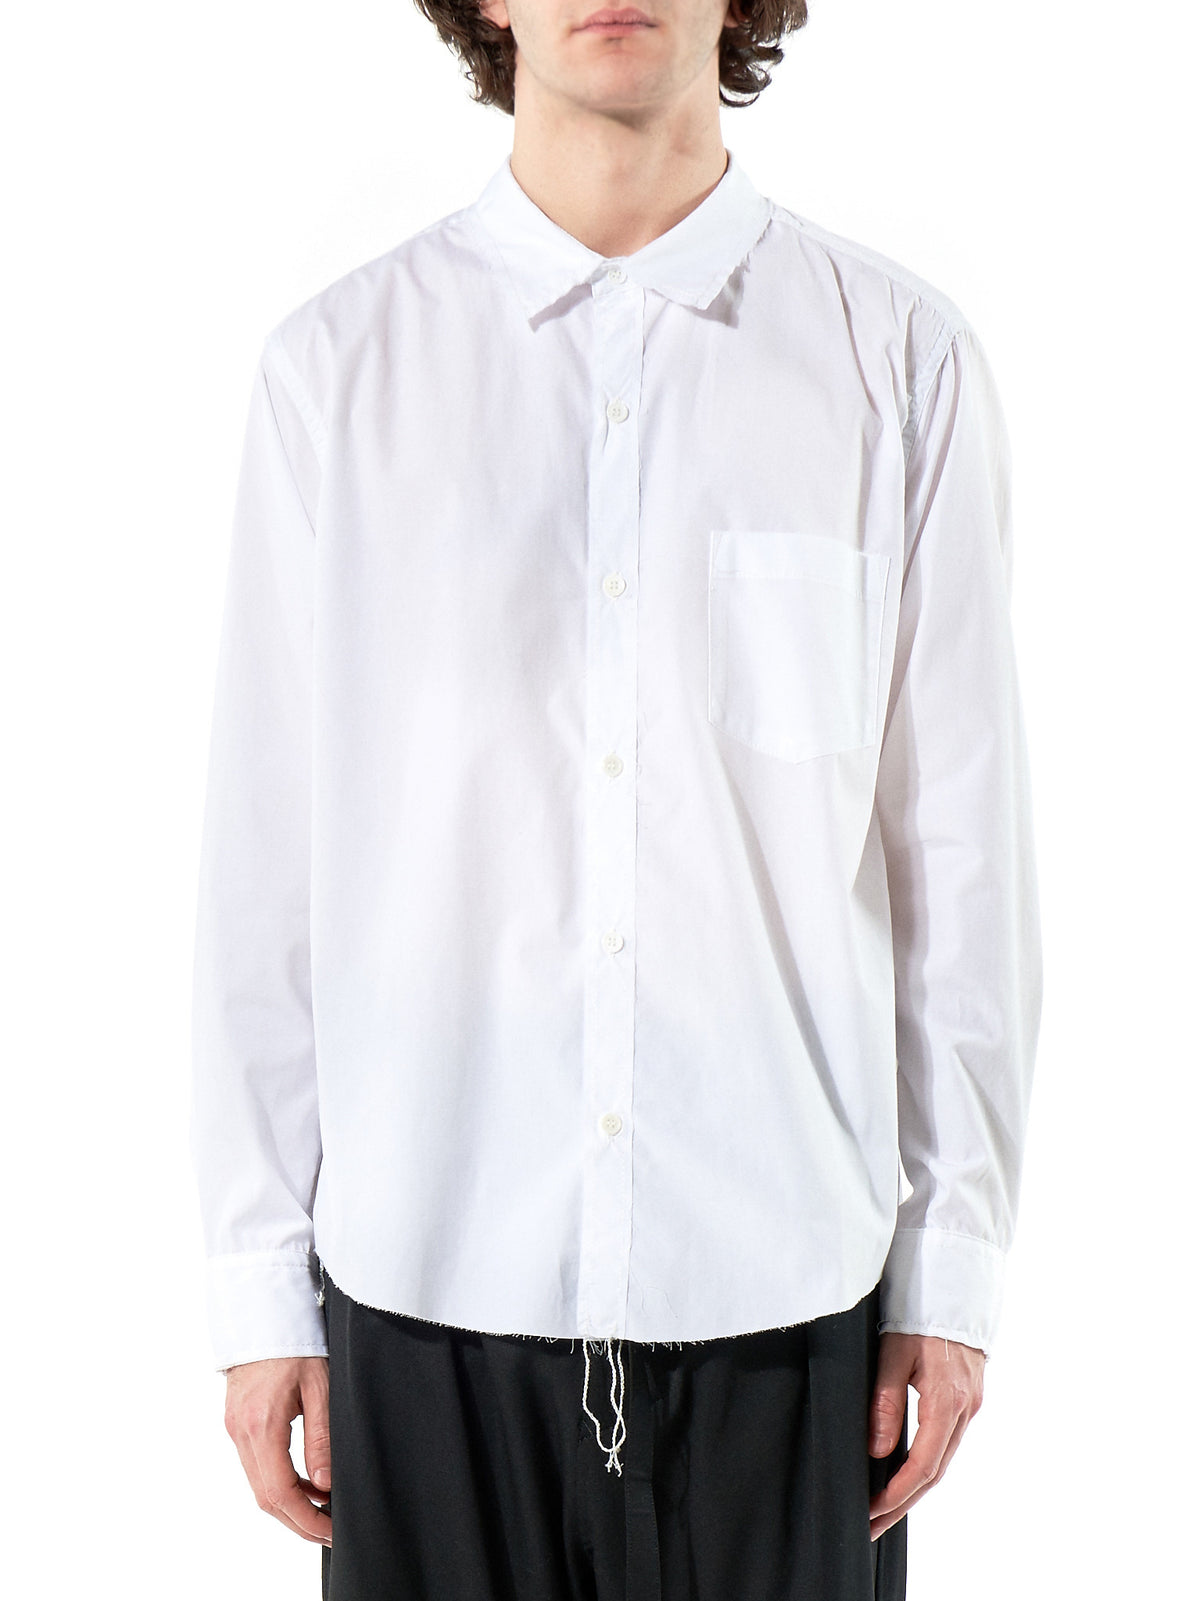 Deconstructed Button Up (SF-B01-001 WHITE) - H. Lorenzo